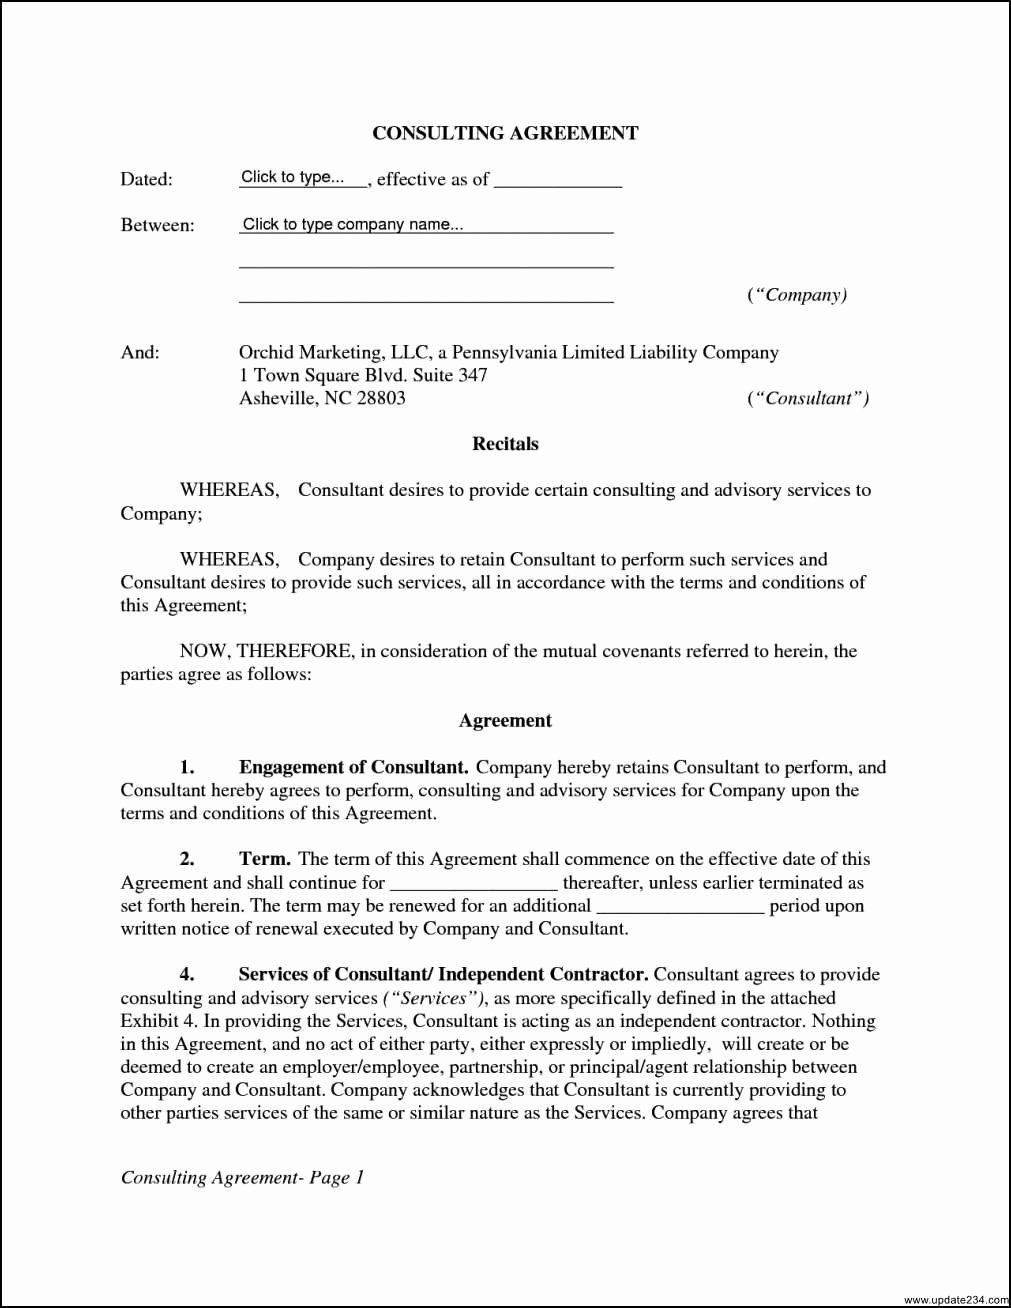 Consulting Contract Template Free Inspirational 34 Last Consultancy Agreement Letter Di D6961 Contract Template Web Design Contract Professional Templates